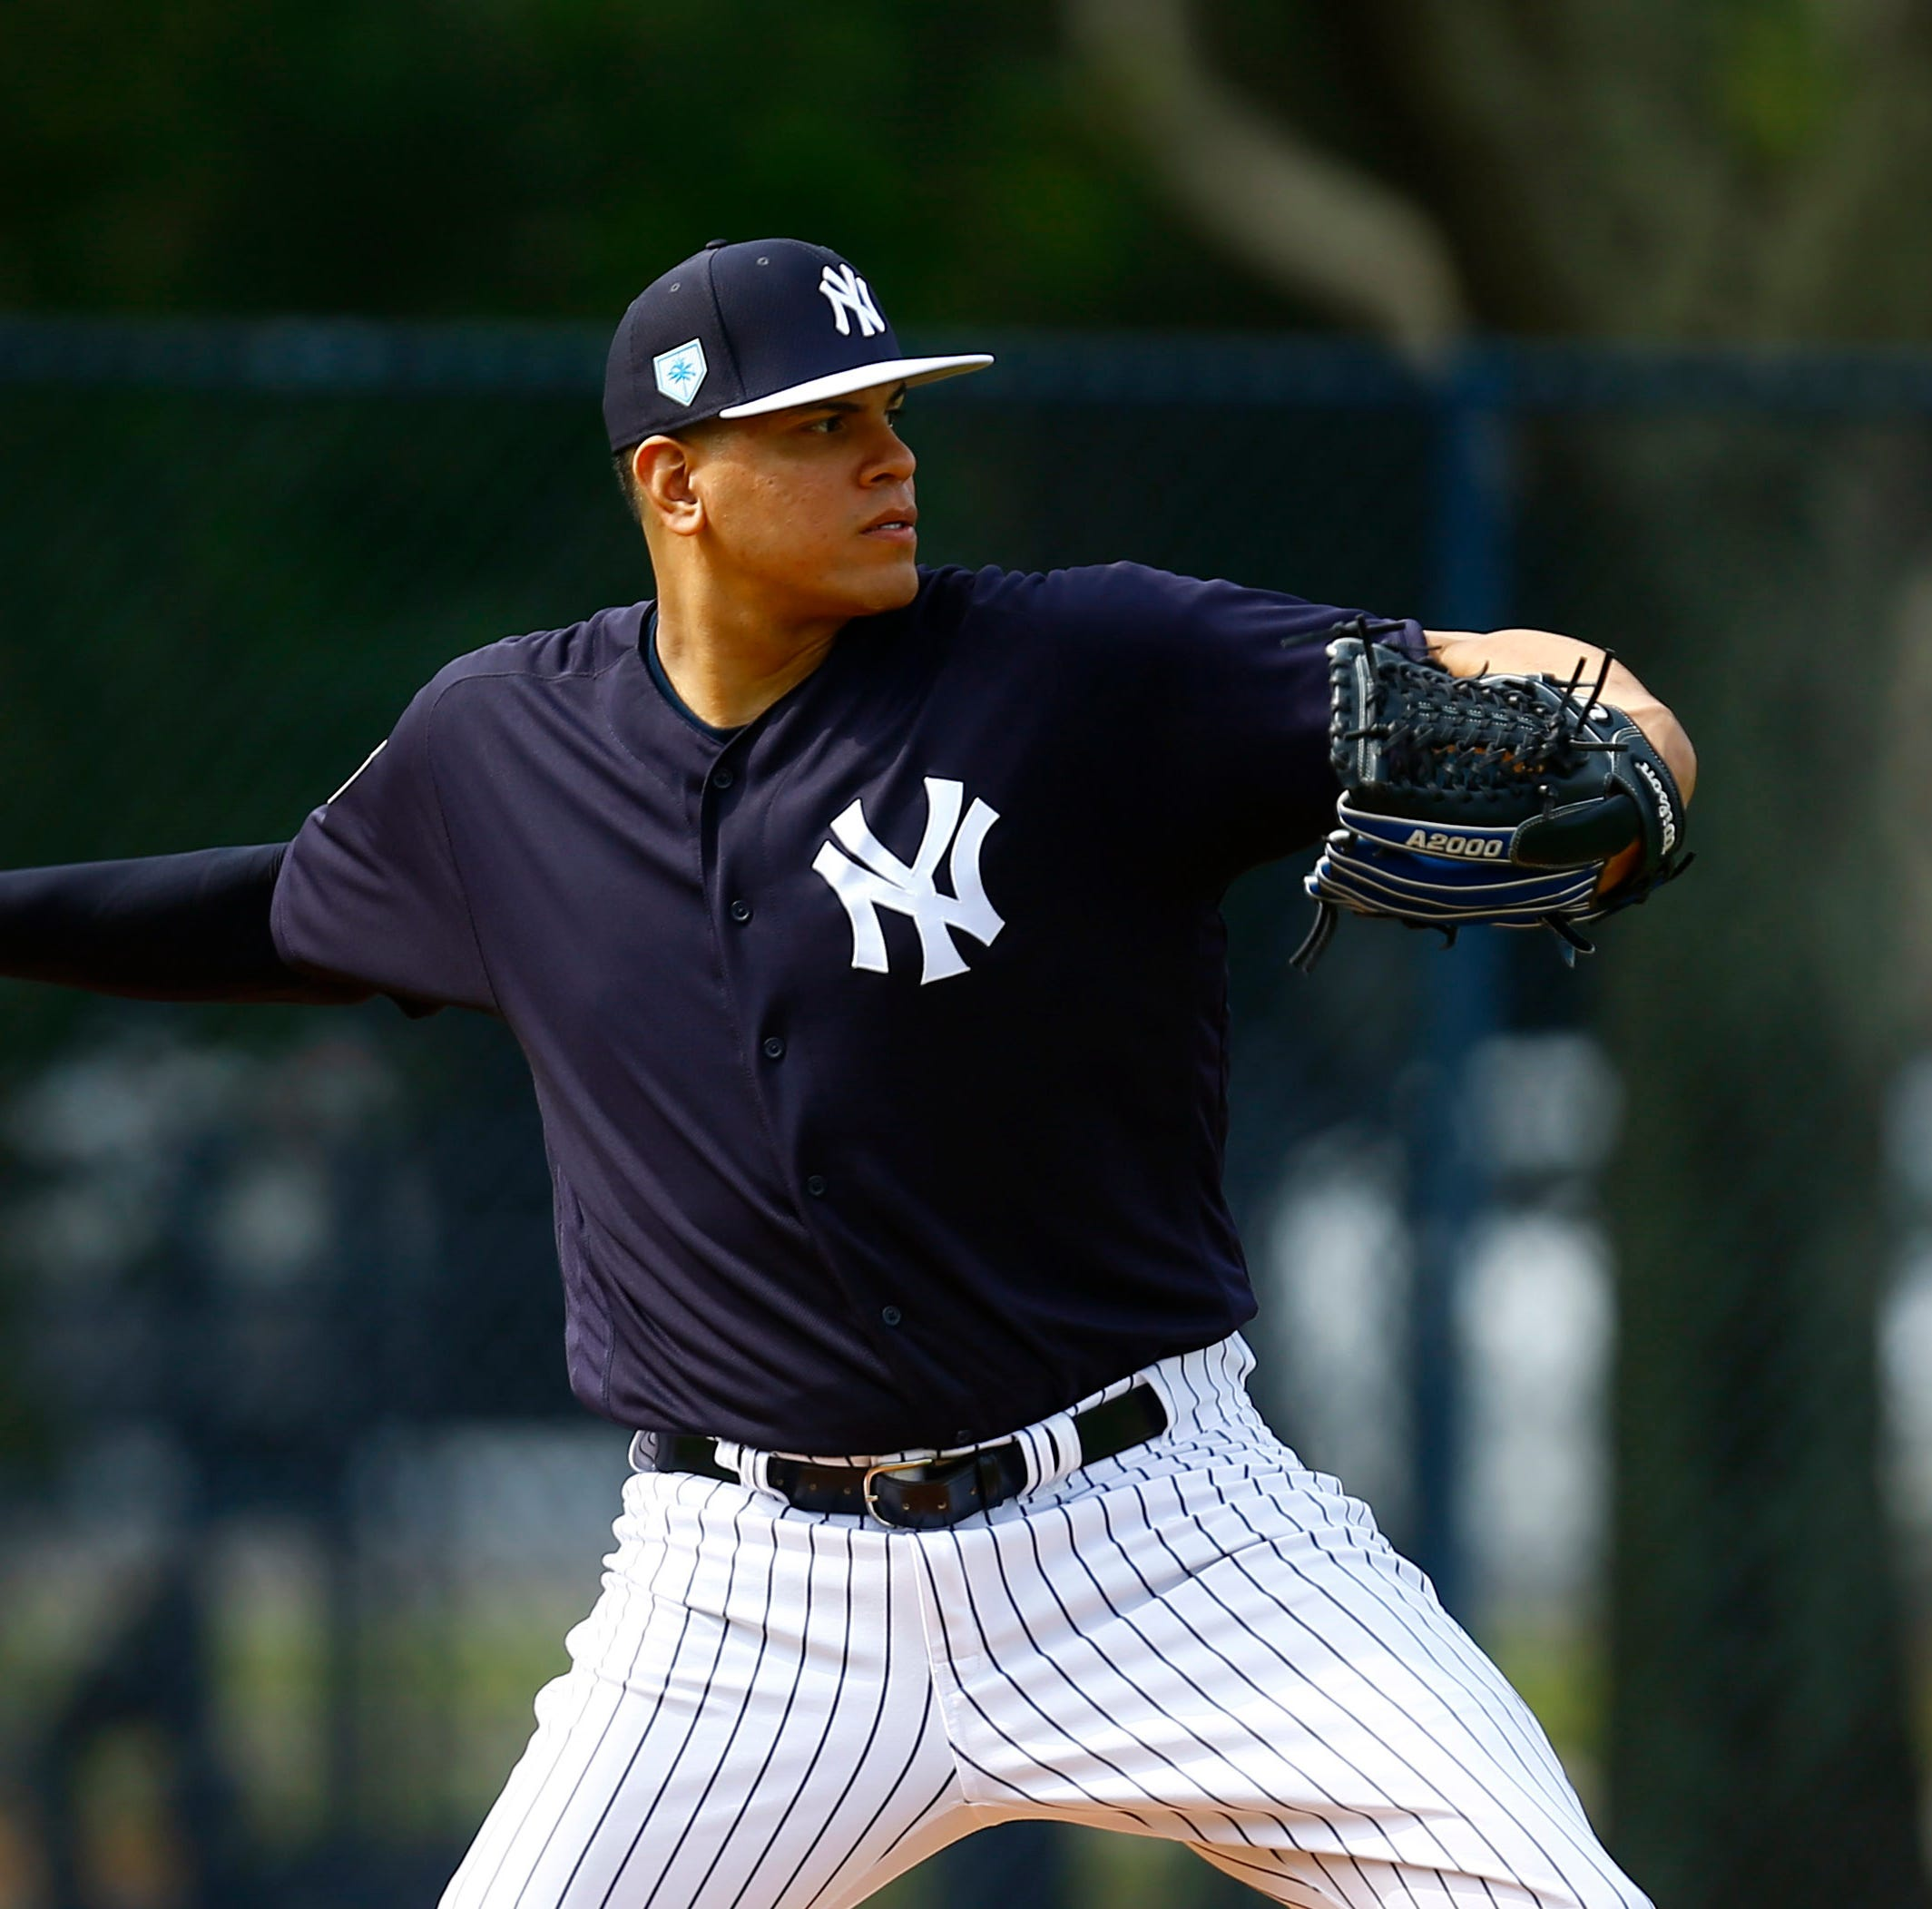 Dellin Betances getting closer to returning to the Yankees' bullpen